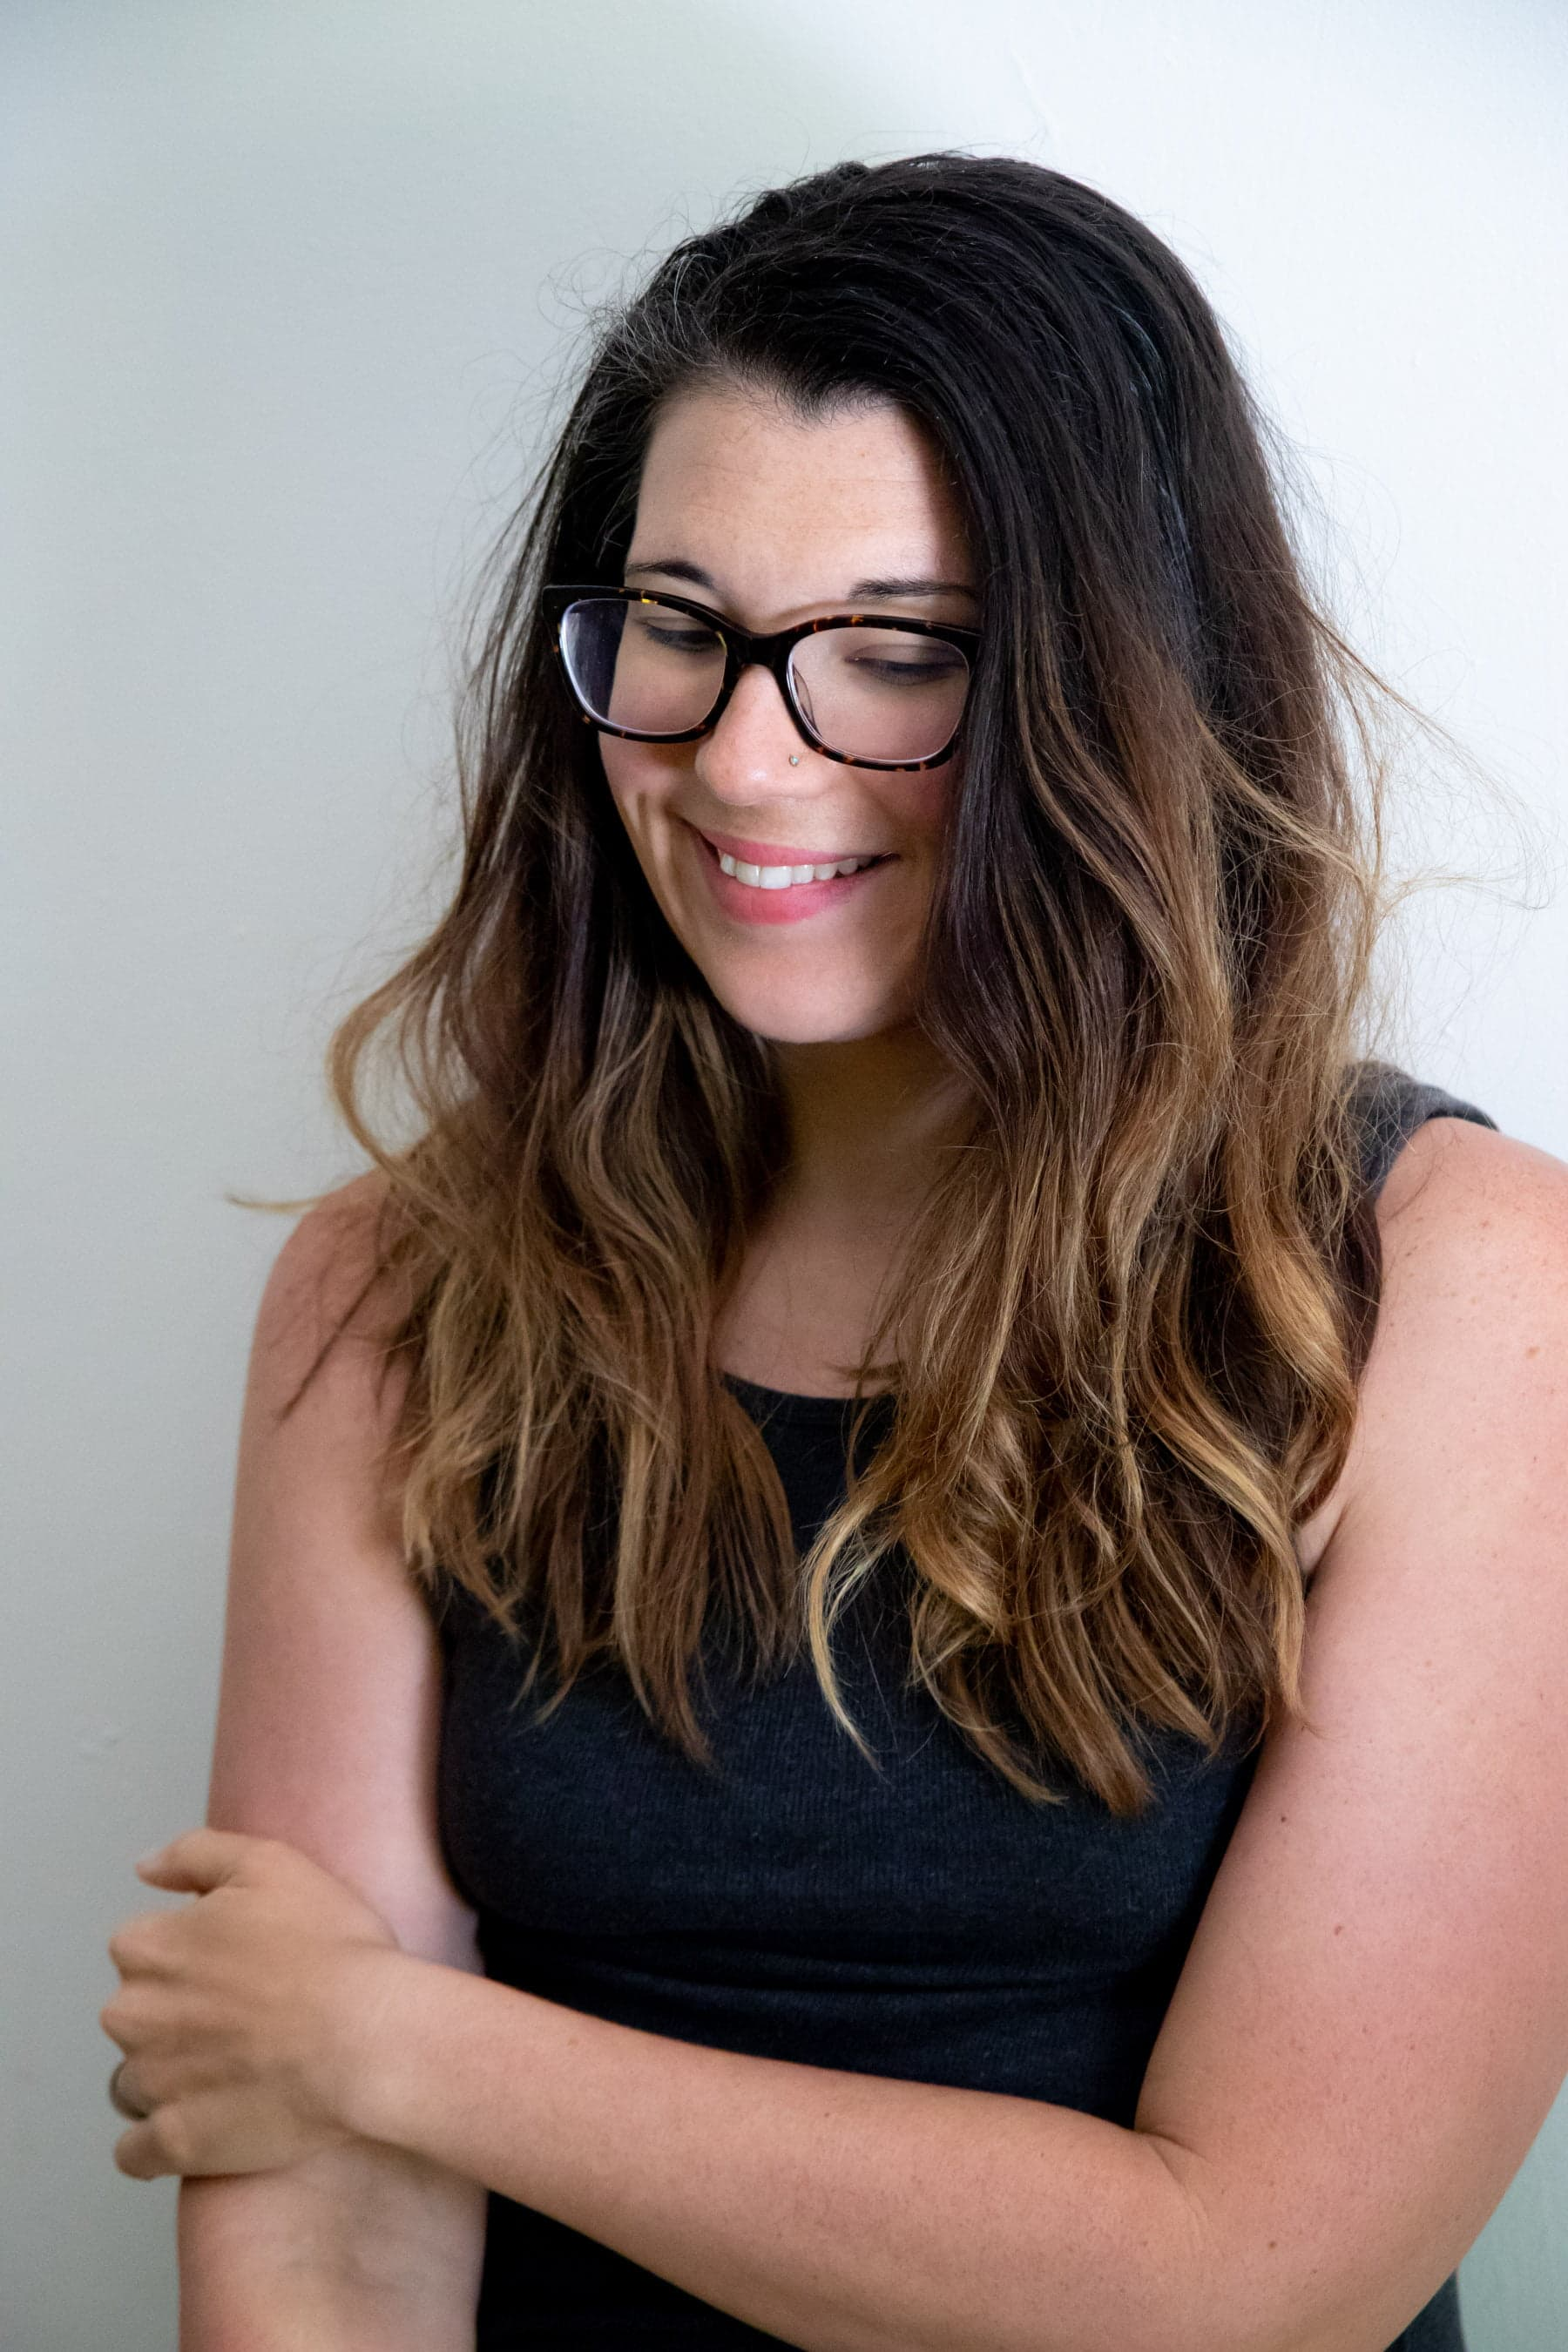 Woman with glasses and long wavy hair, smiling and looking down, with her arms crossed - Lyme disease update